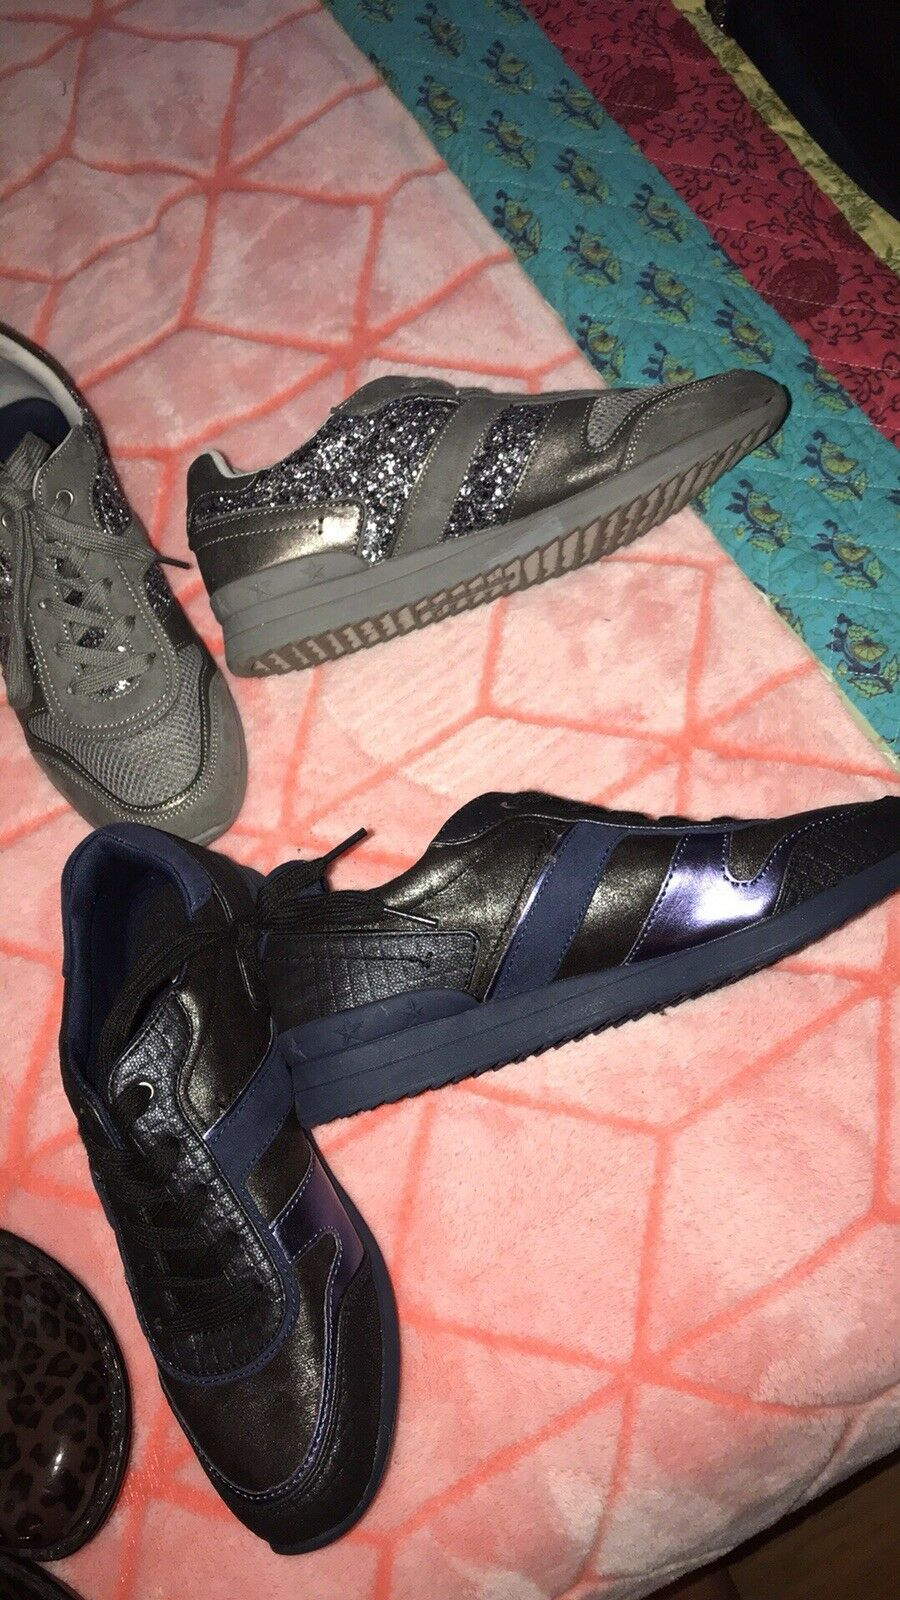 g by guess sneakers (two pairs, silver with sparkles and black with blue/purple)